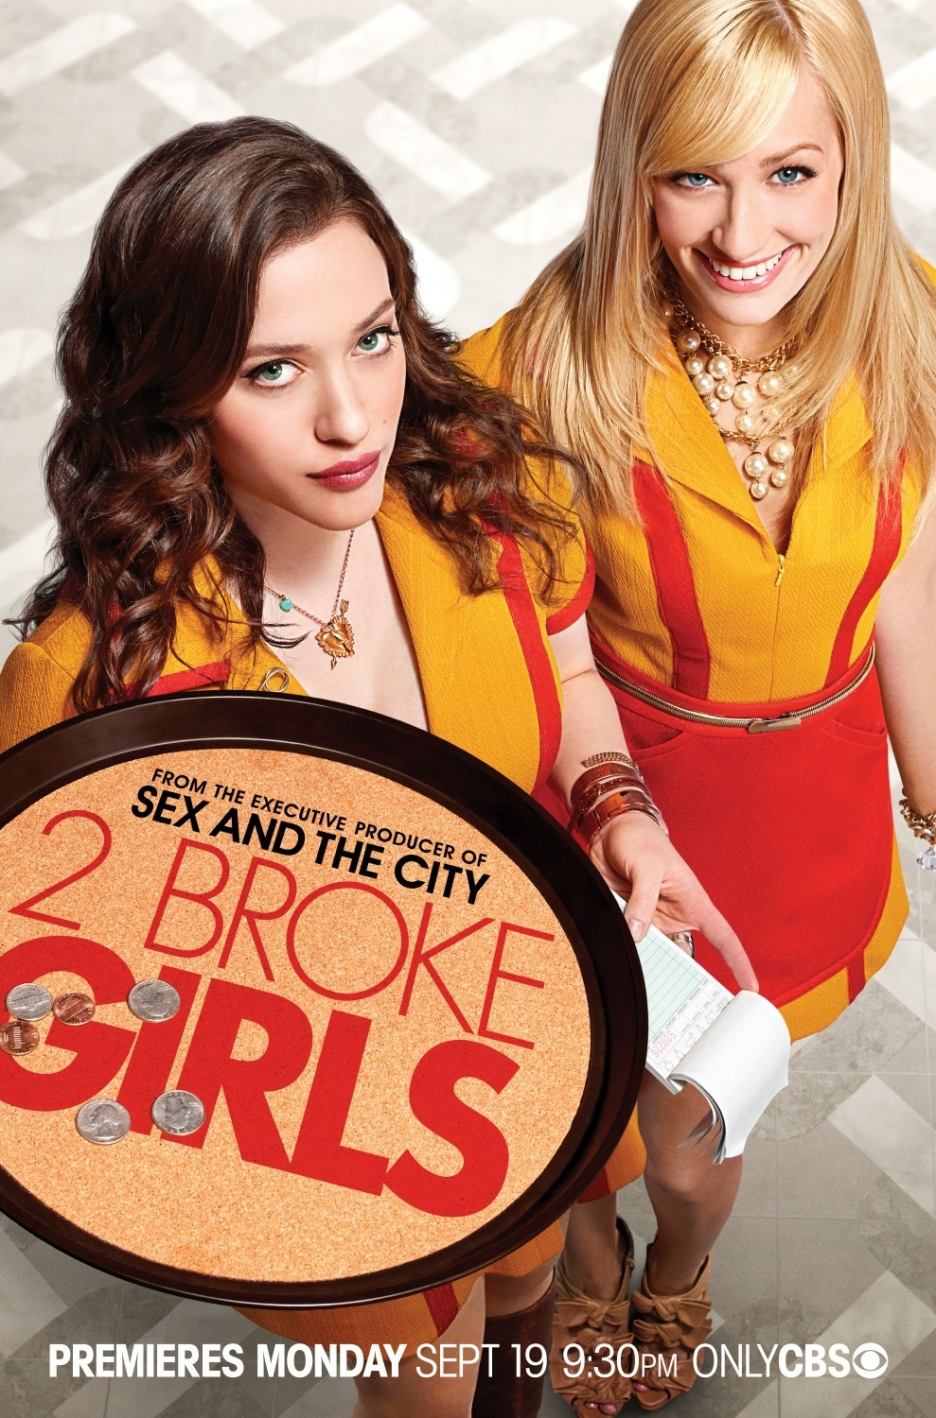 936full-2-broke-girls-poster